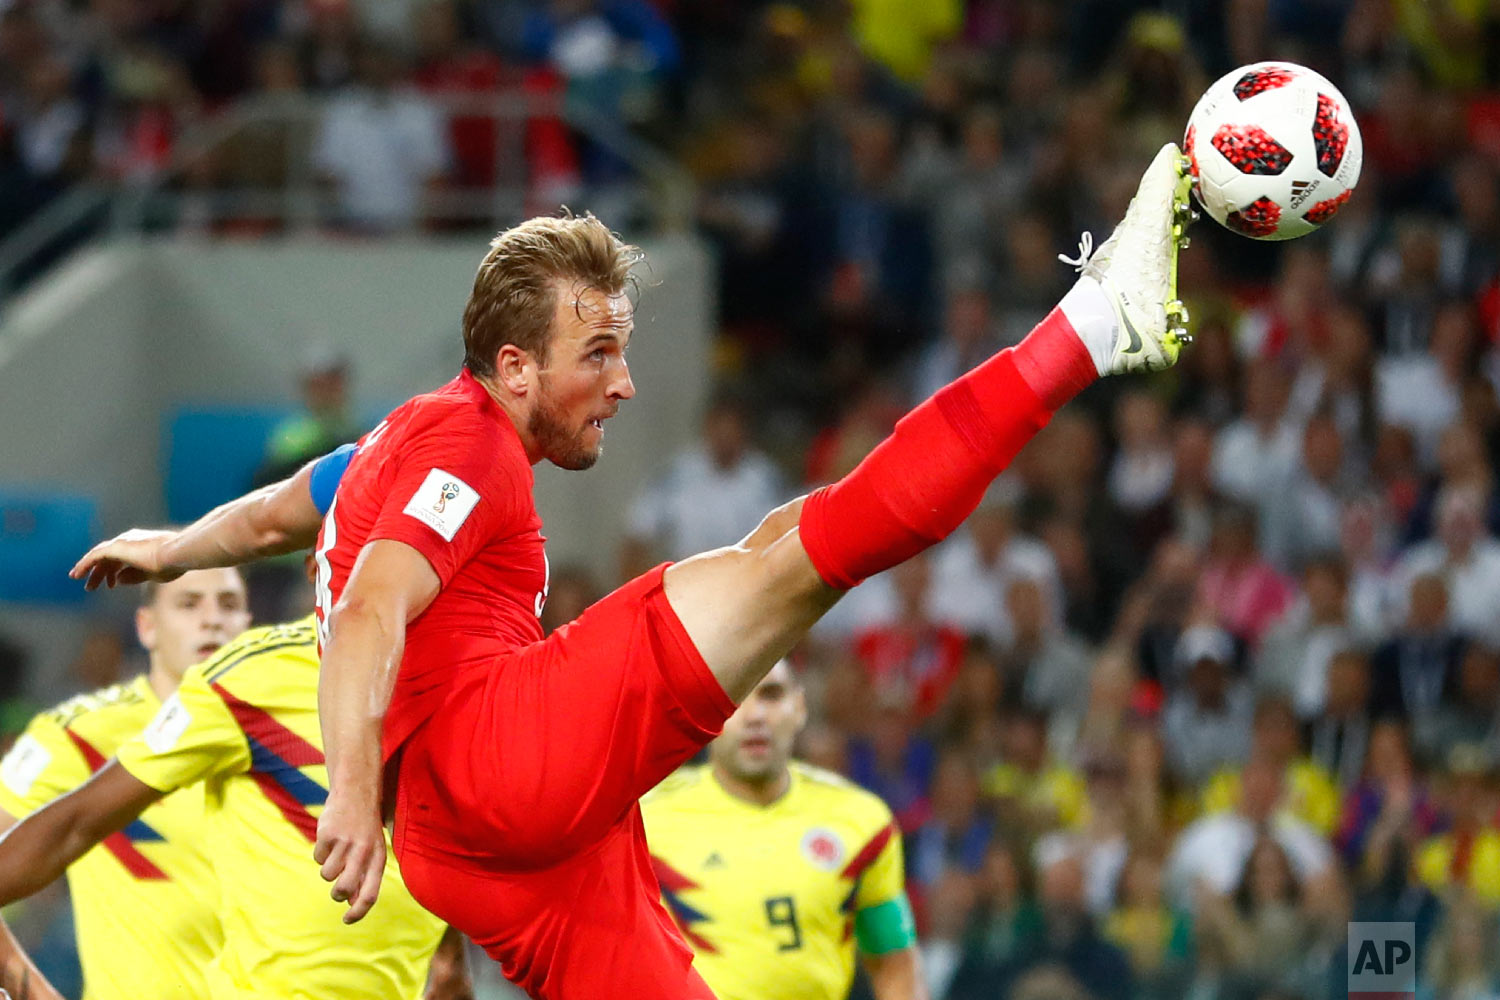 England's Harry Kane tries to control the ball during the round of 16 match between Colombia and England at the 2018 soccer World Cup in the Spartak Stadium, in Moscow, Russia on July 3, 2018. (AP Photo/Matthias Schrader)